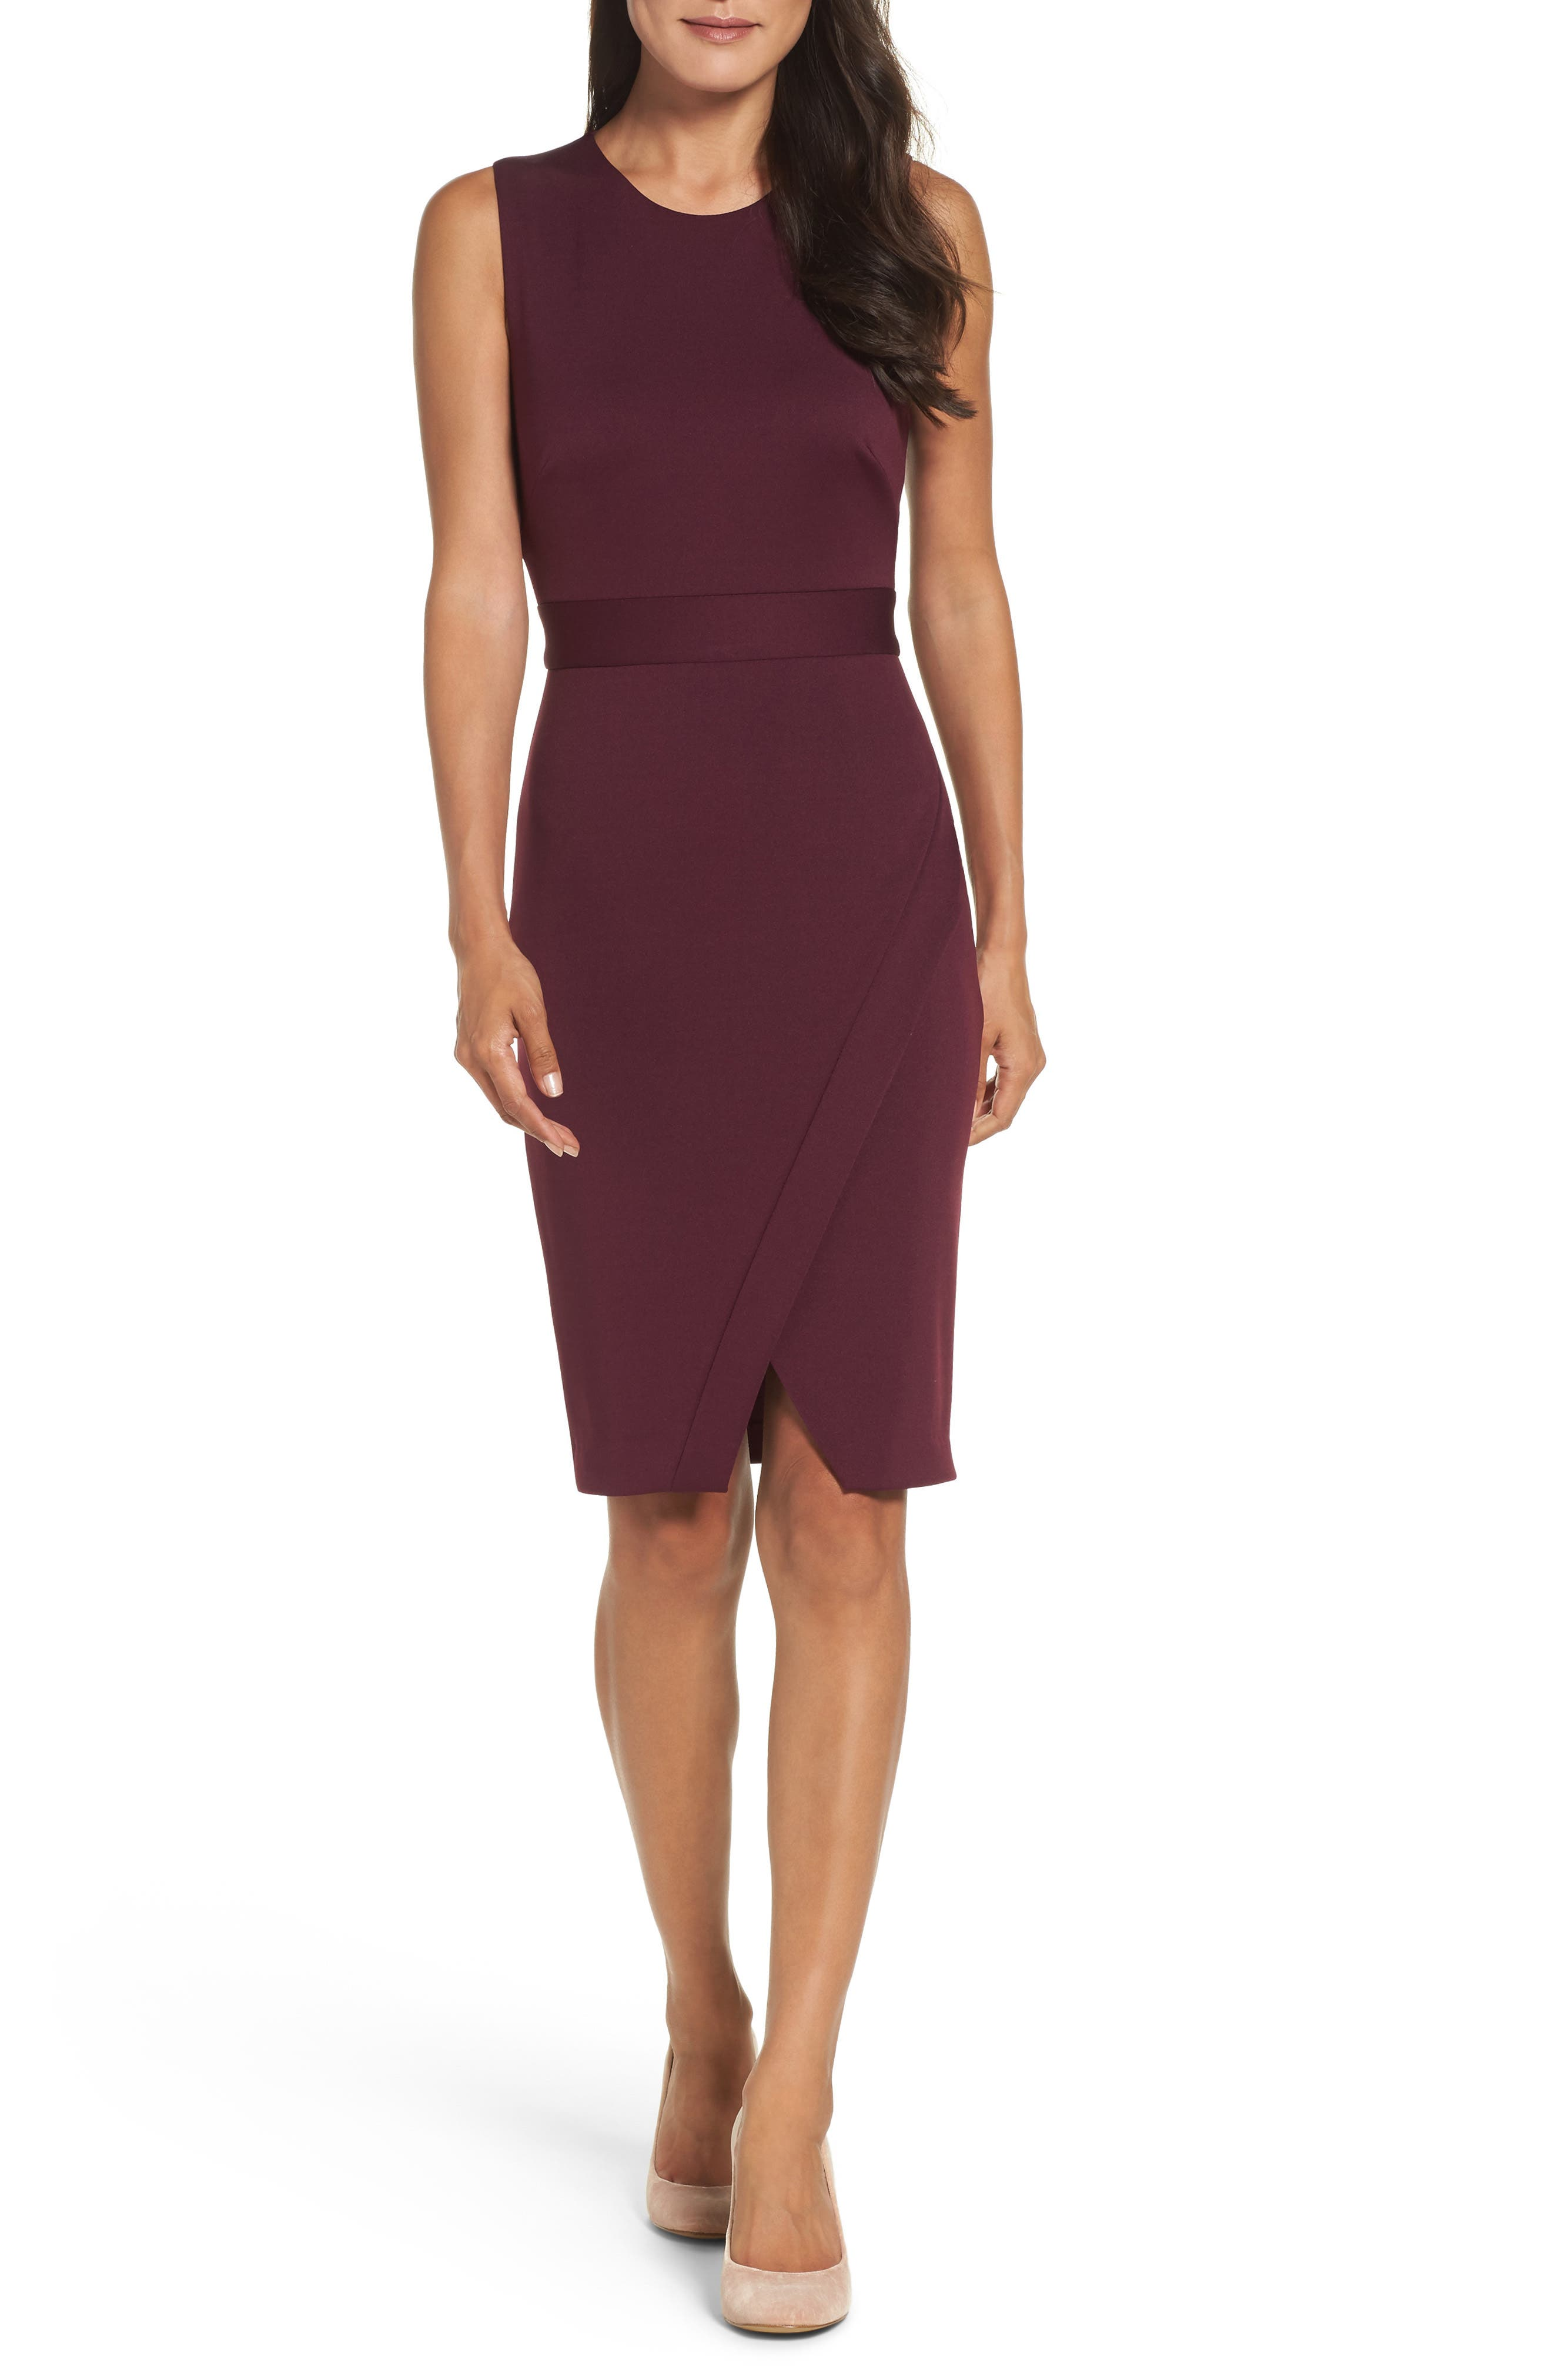 Maggy London Scissor Sheath Dress